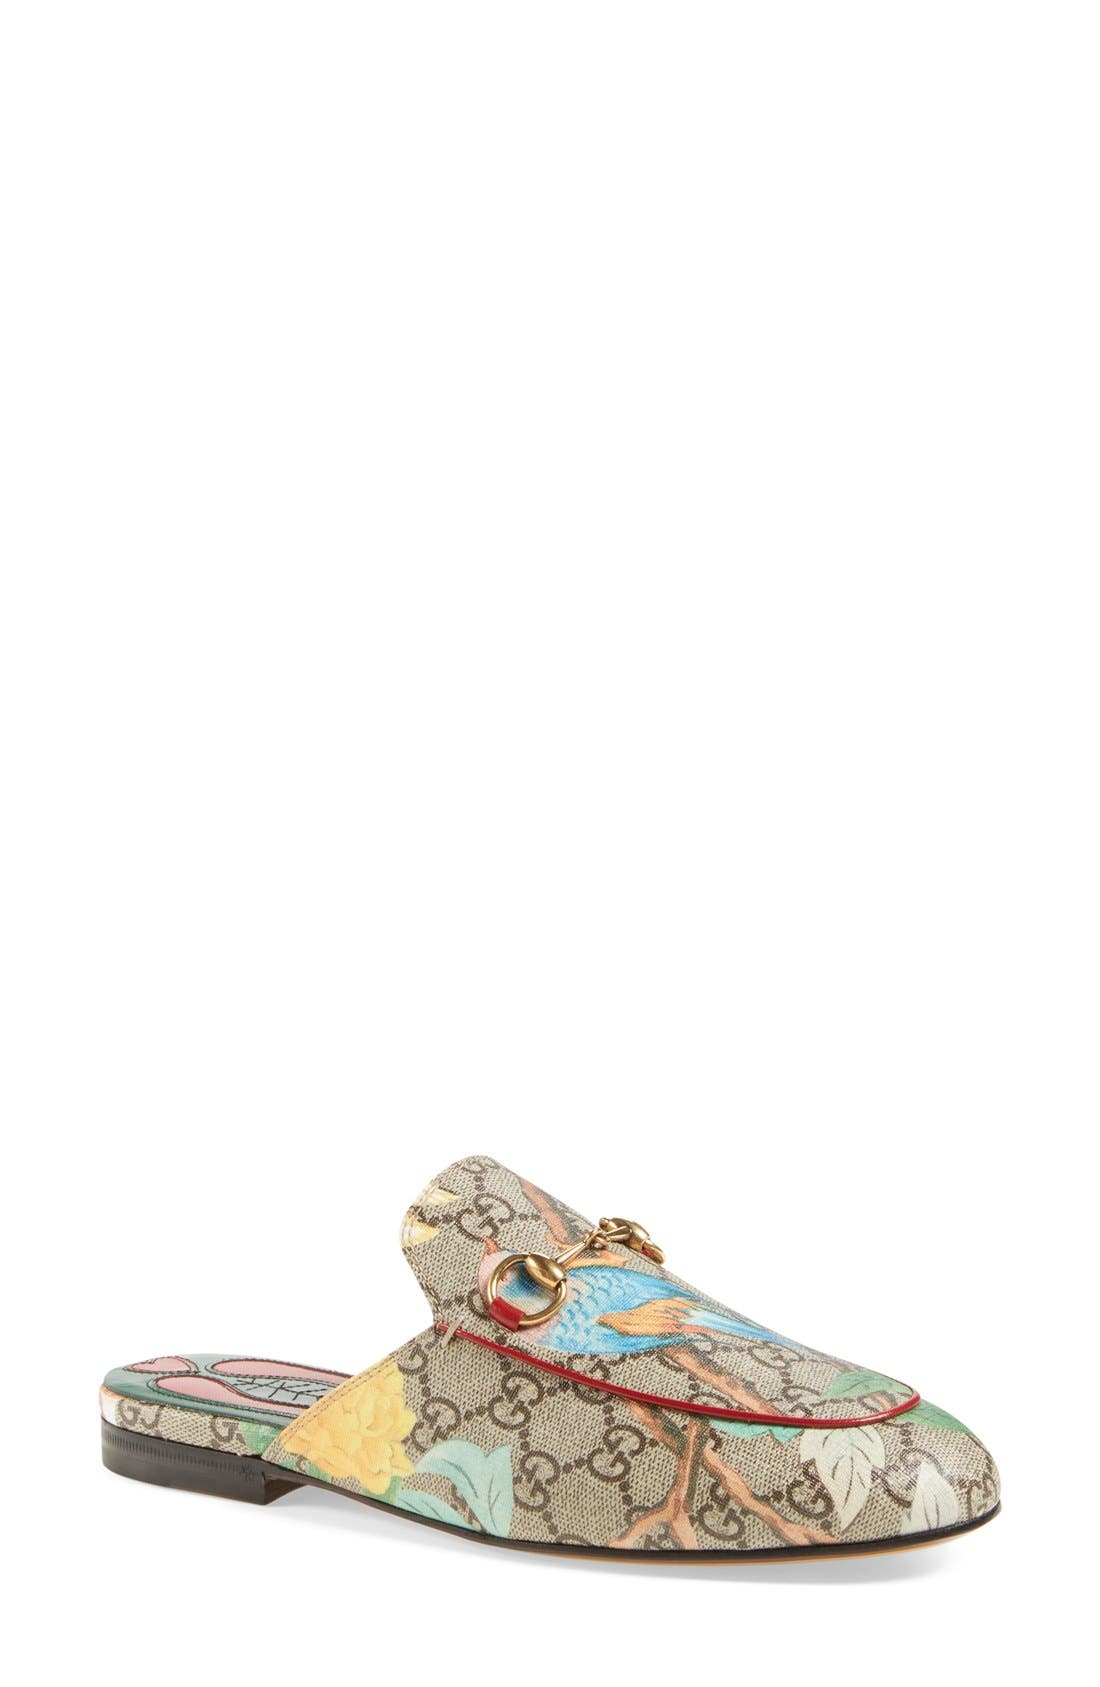 Main Image - Gucci 'Princetown' Floral Print Mule Loafer (Women)